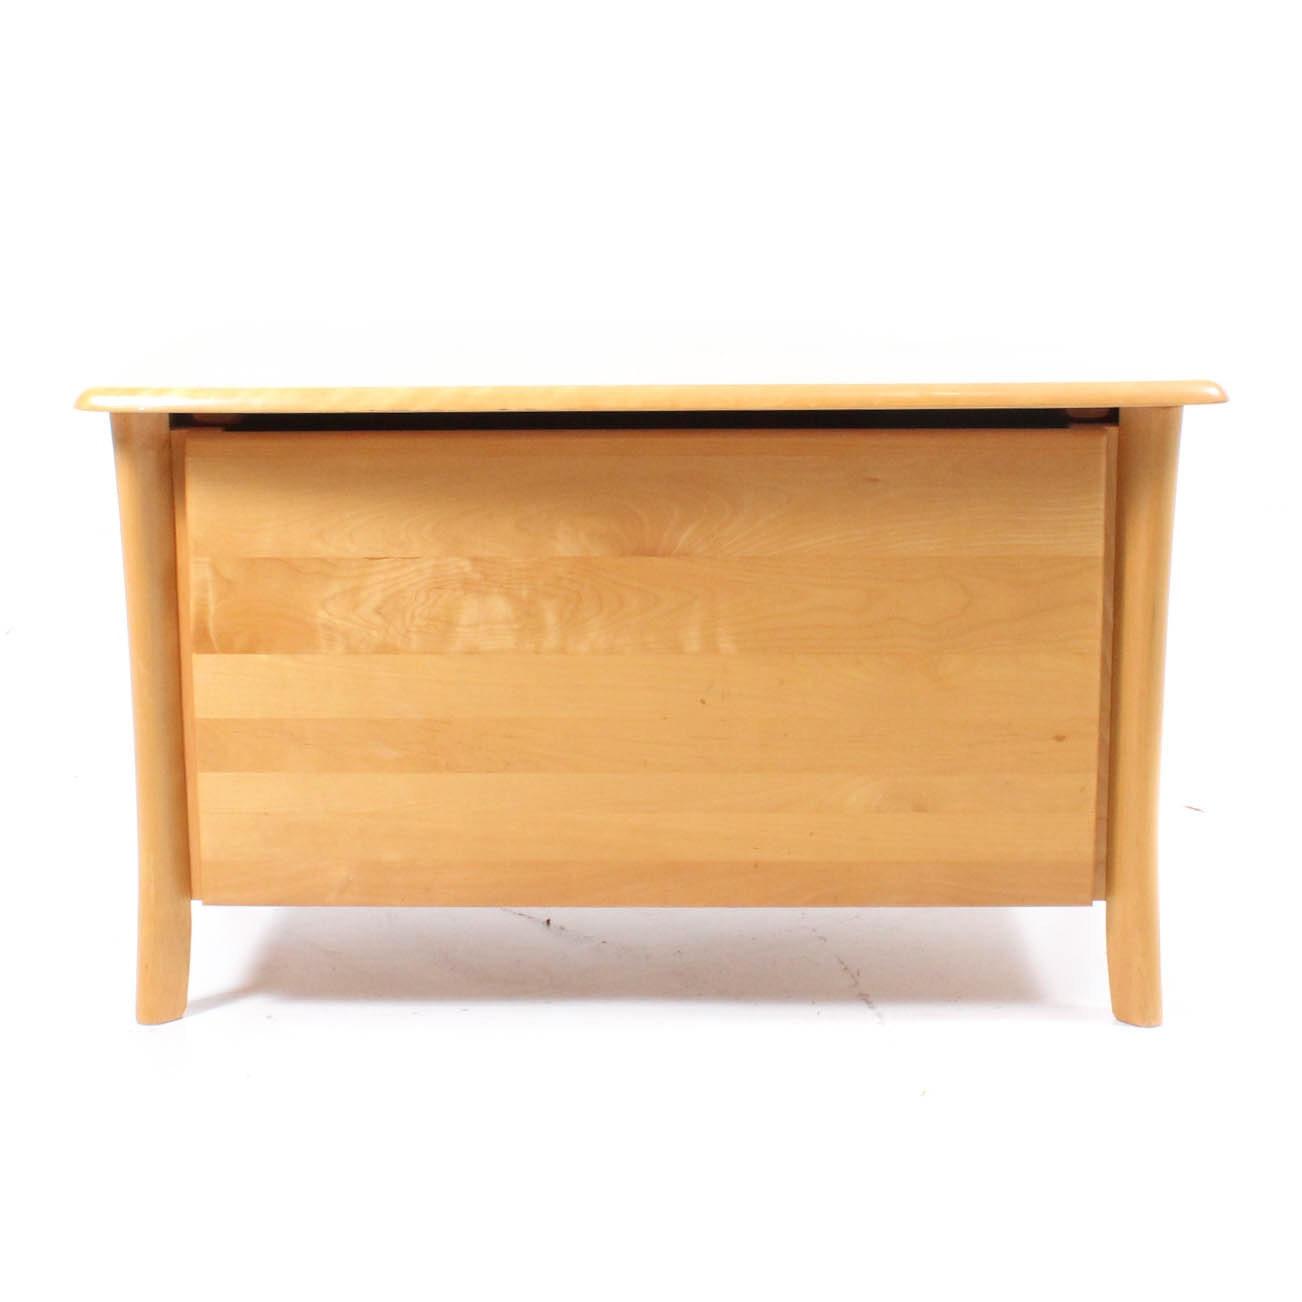 Blonde Blanket Chest by Industrie de Meubles of Canada